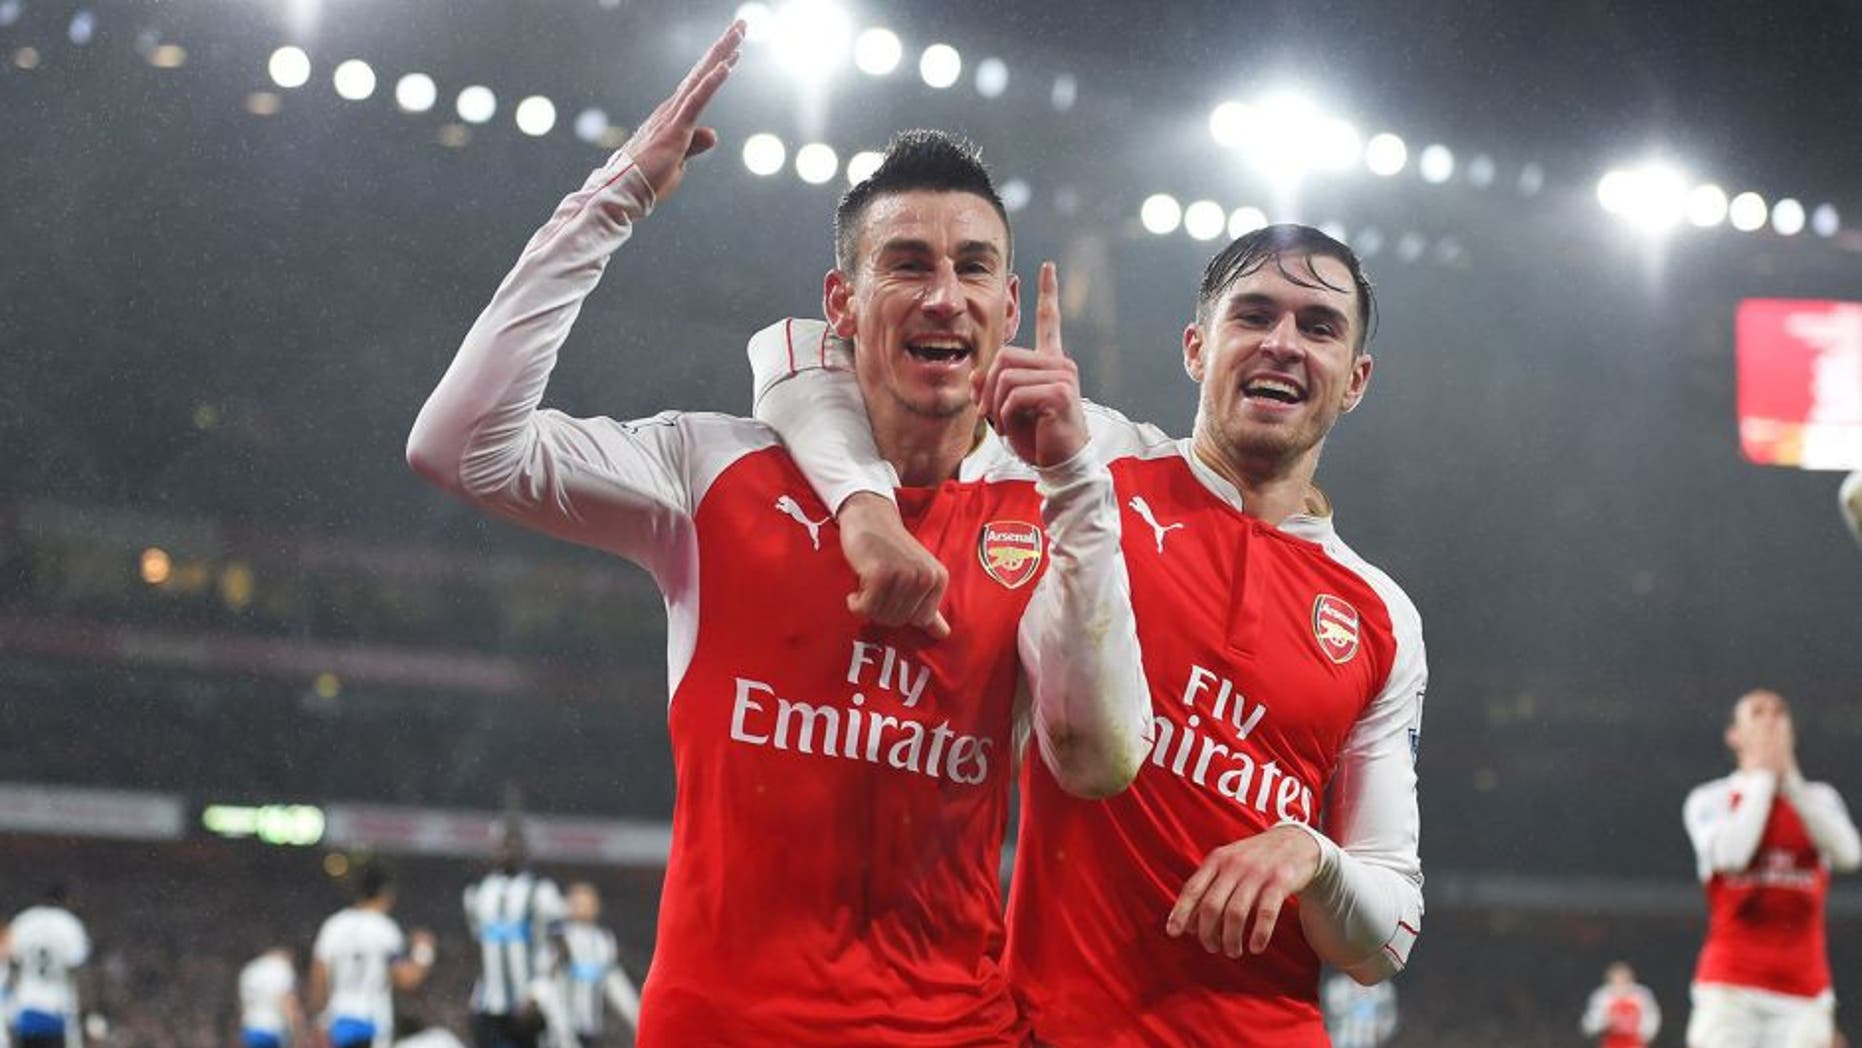 LONDON, ENGLAND - JANUARY 02: Laurent Koscielny (L) of Arsenal celebrates scoring his team's first goal with his team mate Aaron Ramsey (R) during the Barclays Premier League match between Arsenal and Newcastle United at Emirates Stadium on January 2, 2016 in London, England. (Photo by Shaun Botterill/Getty Images)